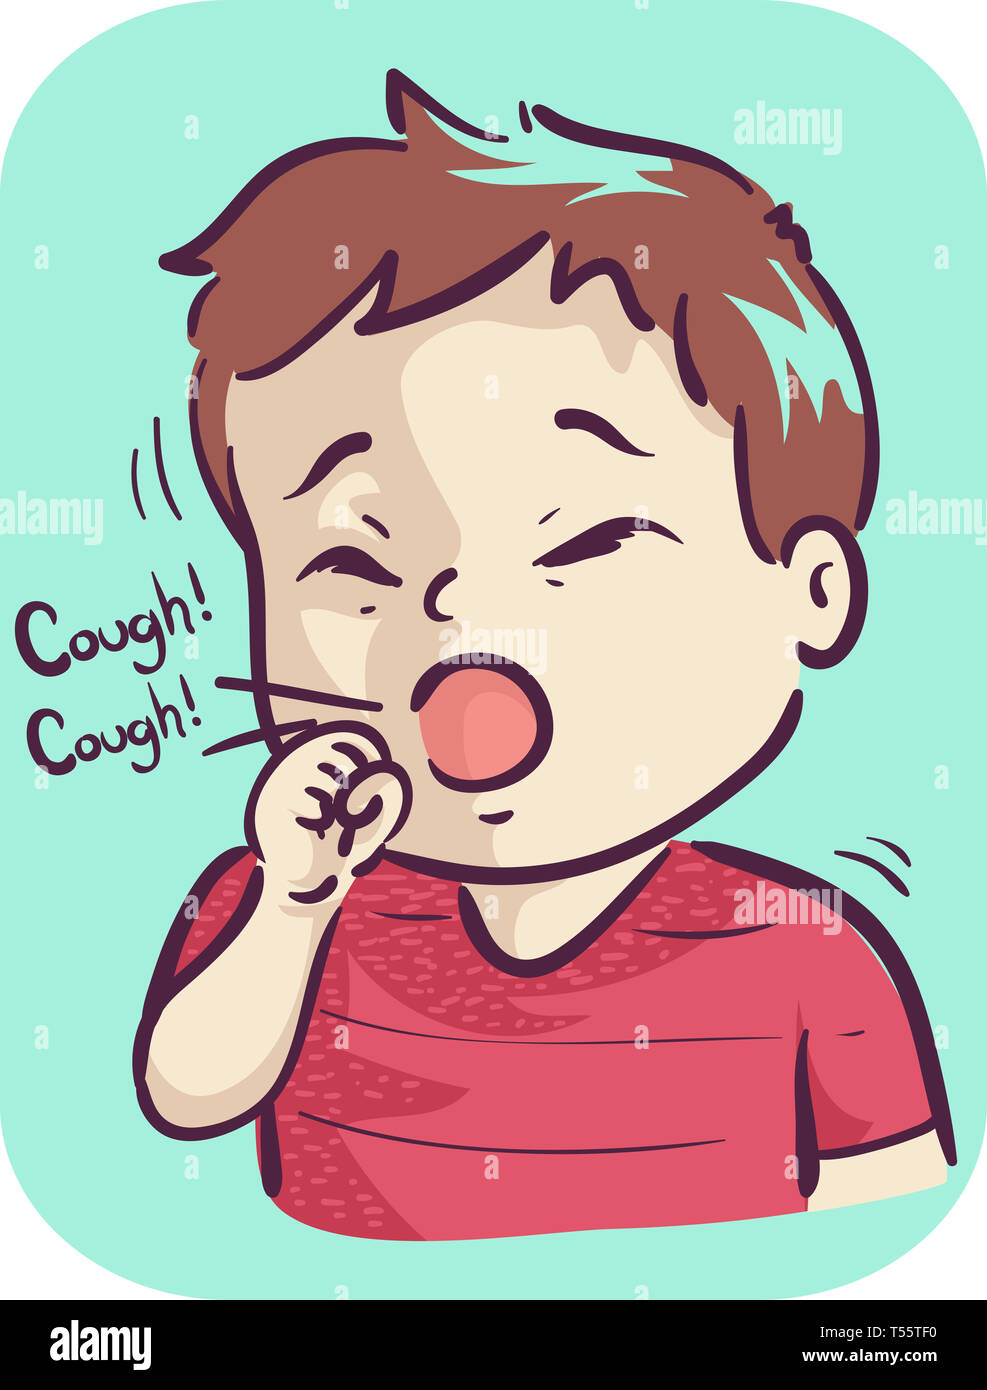 boy cough cartoon illustration high resolution stock photography and images alamy https www alamy com illustration of a kid boy toddler coughing image244147428 html